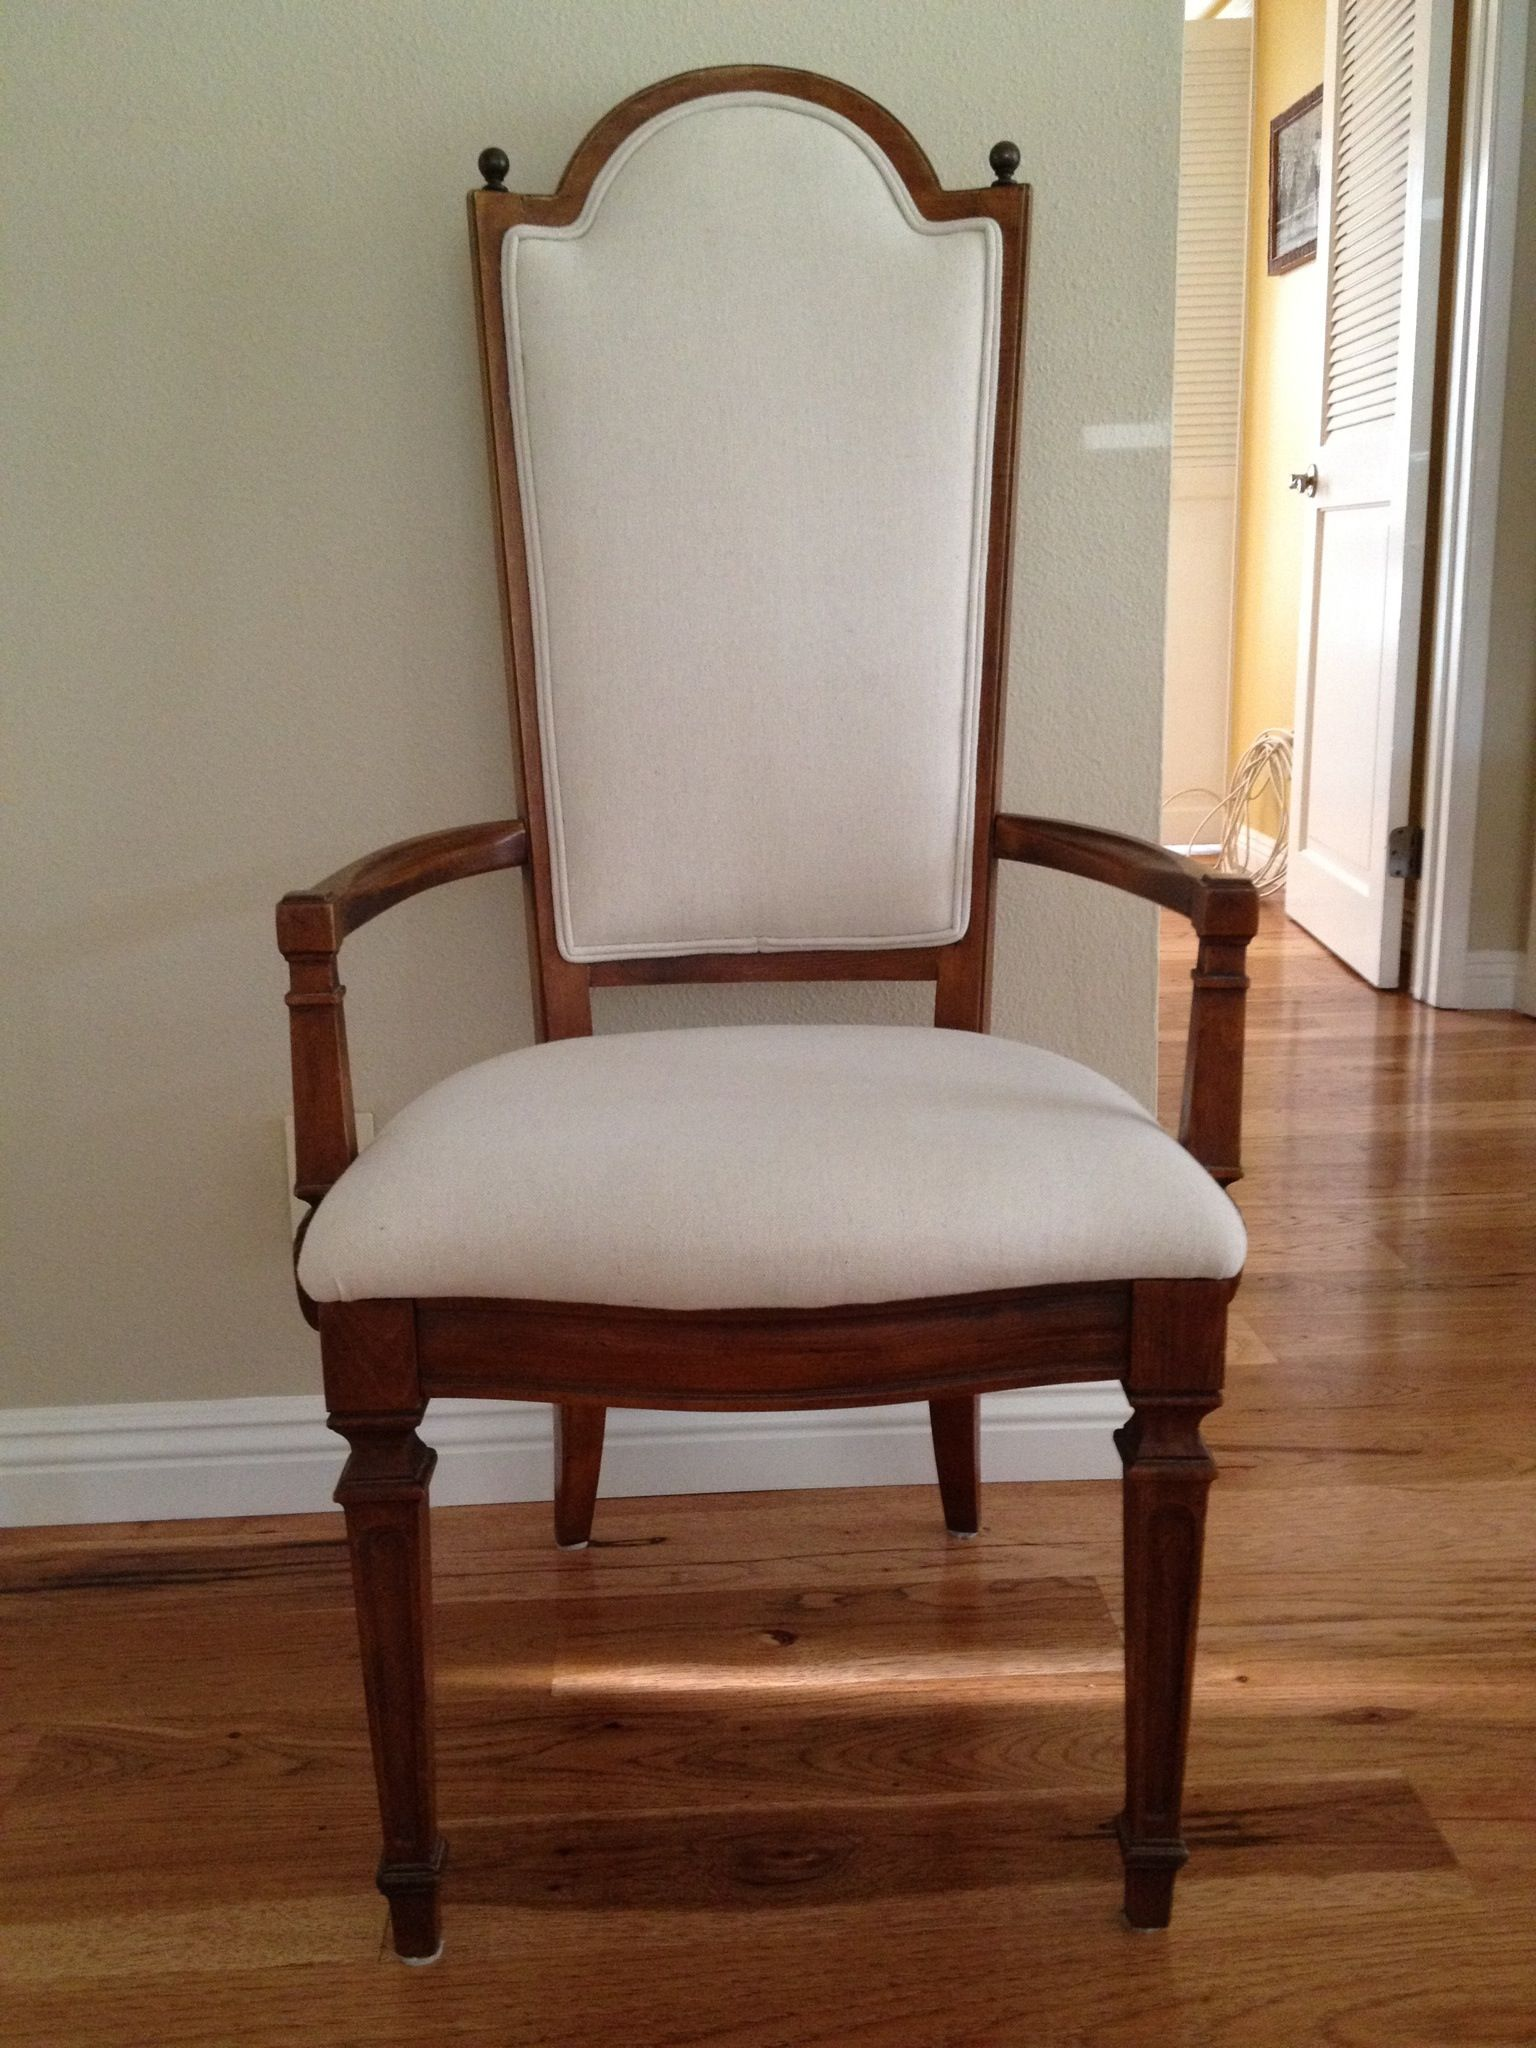 How To Reupholster A Dining Room Chair Seat And Back Alluring Thomasville Dining Room Chair That Had Torn Cane Back And Worn Out Design Ideas